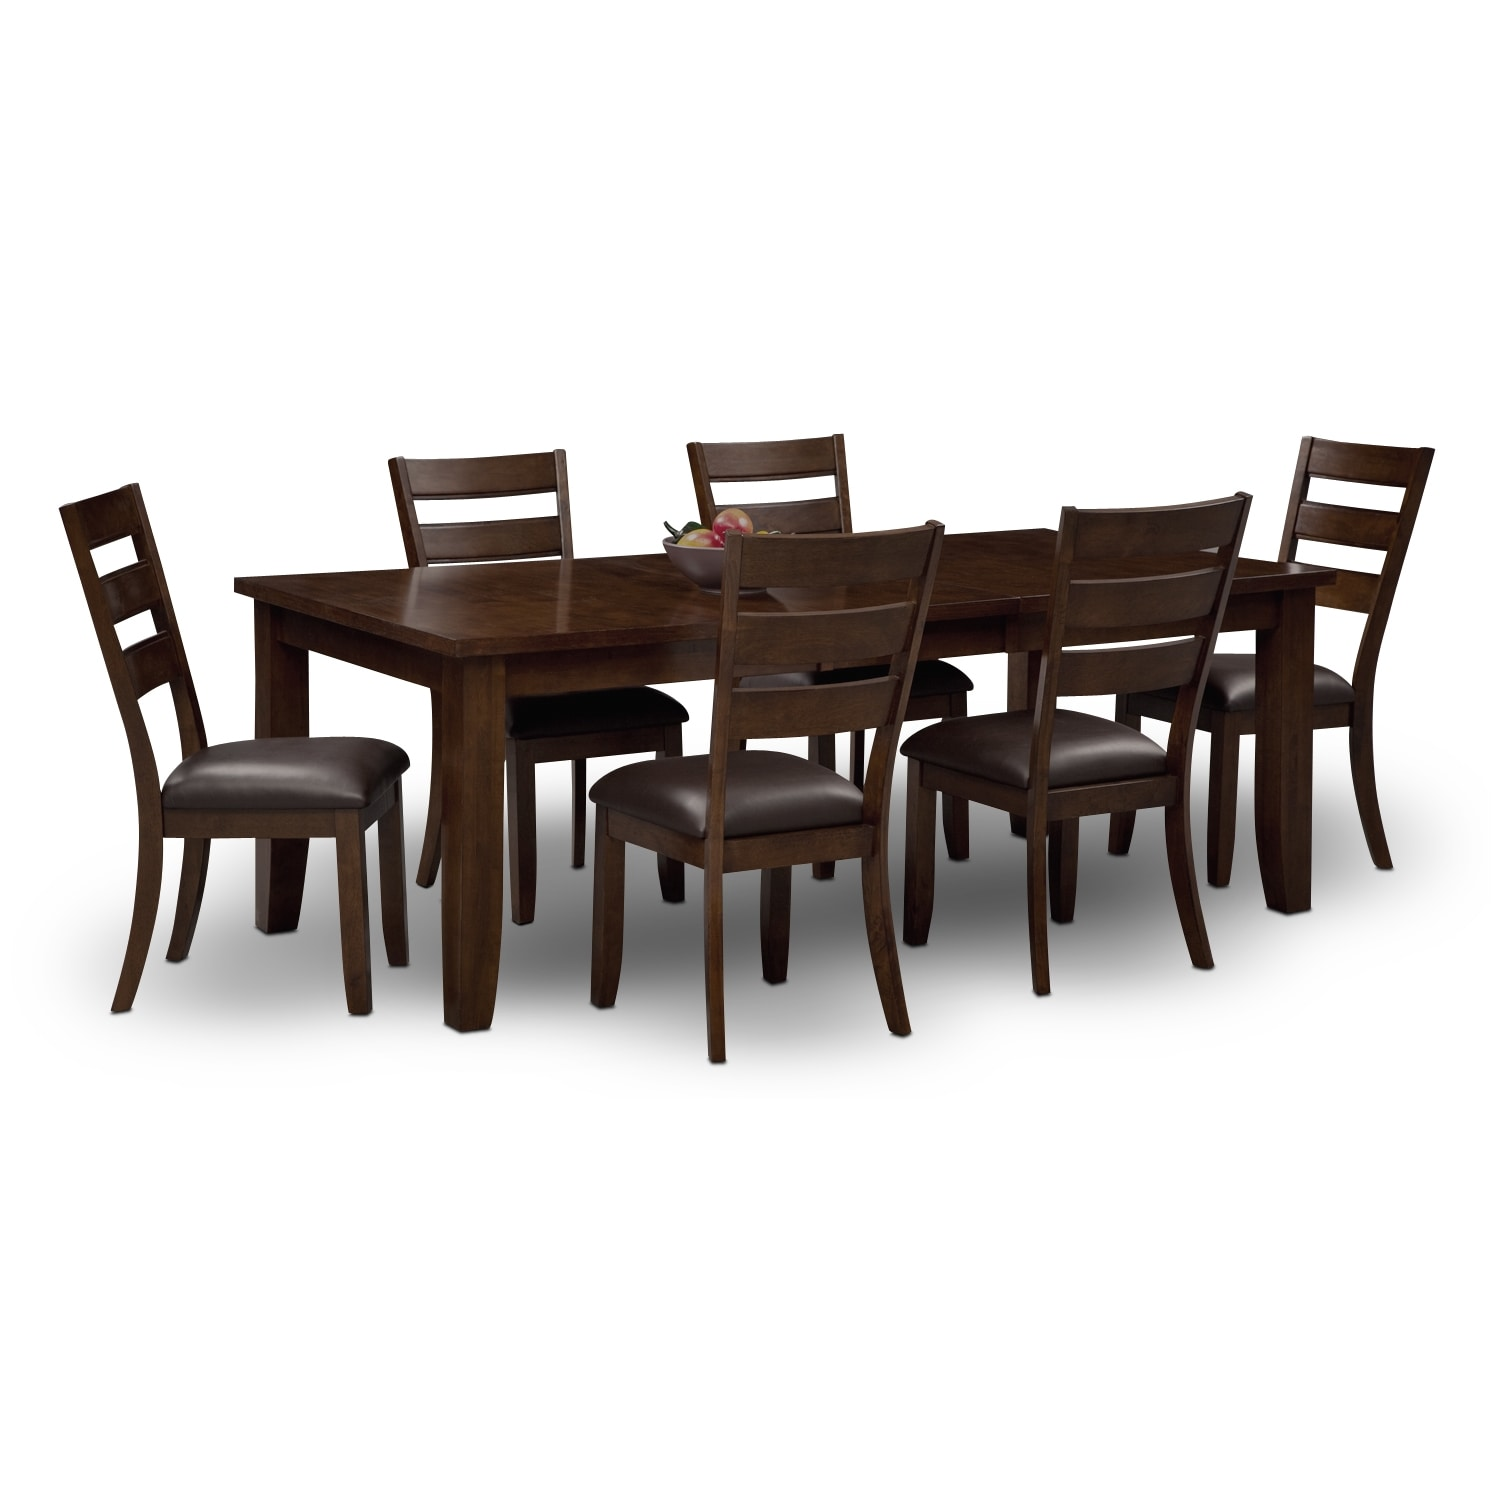 A America Bedroom And Dining Room Furniture On Sale: American Signature Furniture